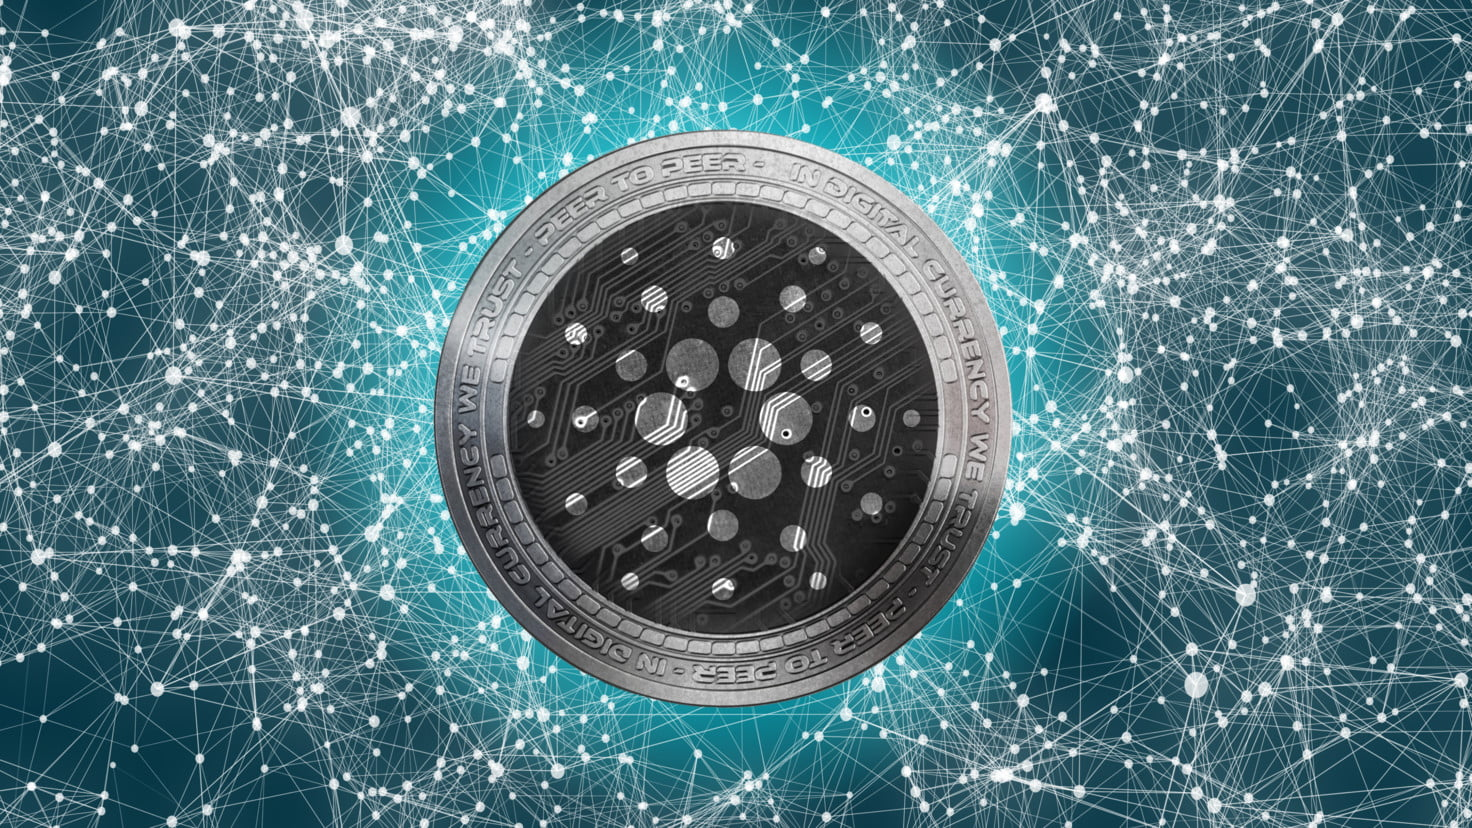 Cardano's Charles Hoskinson Announces Launch Date For Massive Upgrade